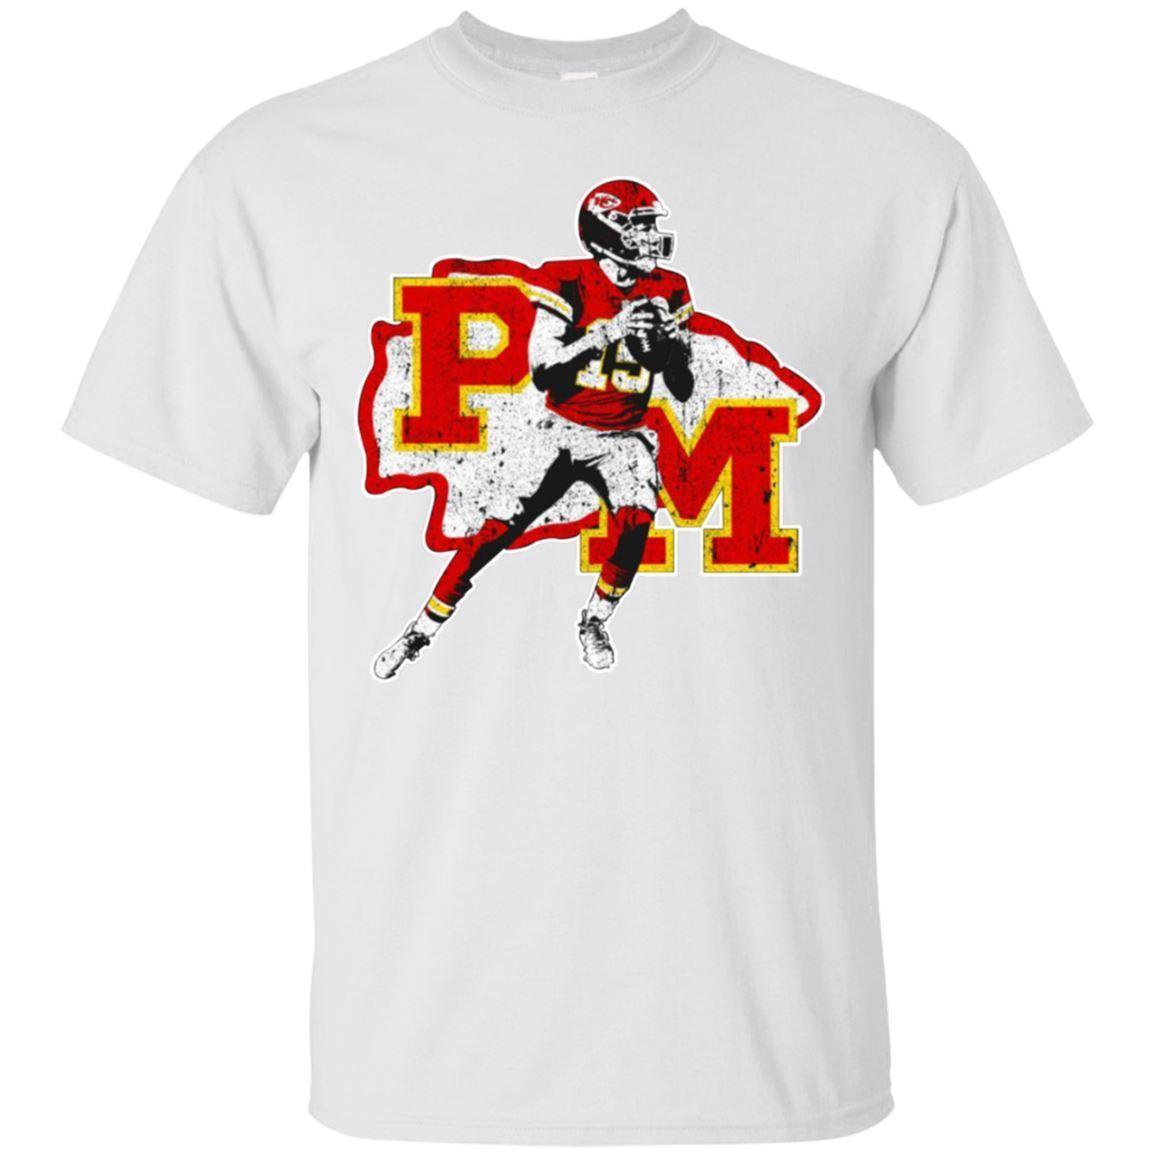 40bd9ff68 Patrick Mahomes T Shirt Kansas City Chiefs Men S Tee Shirt Short Sleeve S  3XL Funny Unisex Casual Tee Gift Top Online T Shirt Printing On T Shirts  From ...